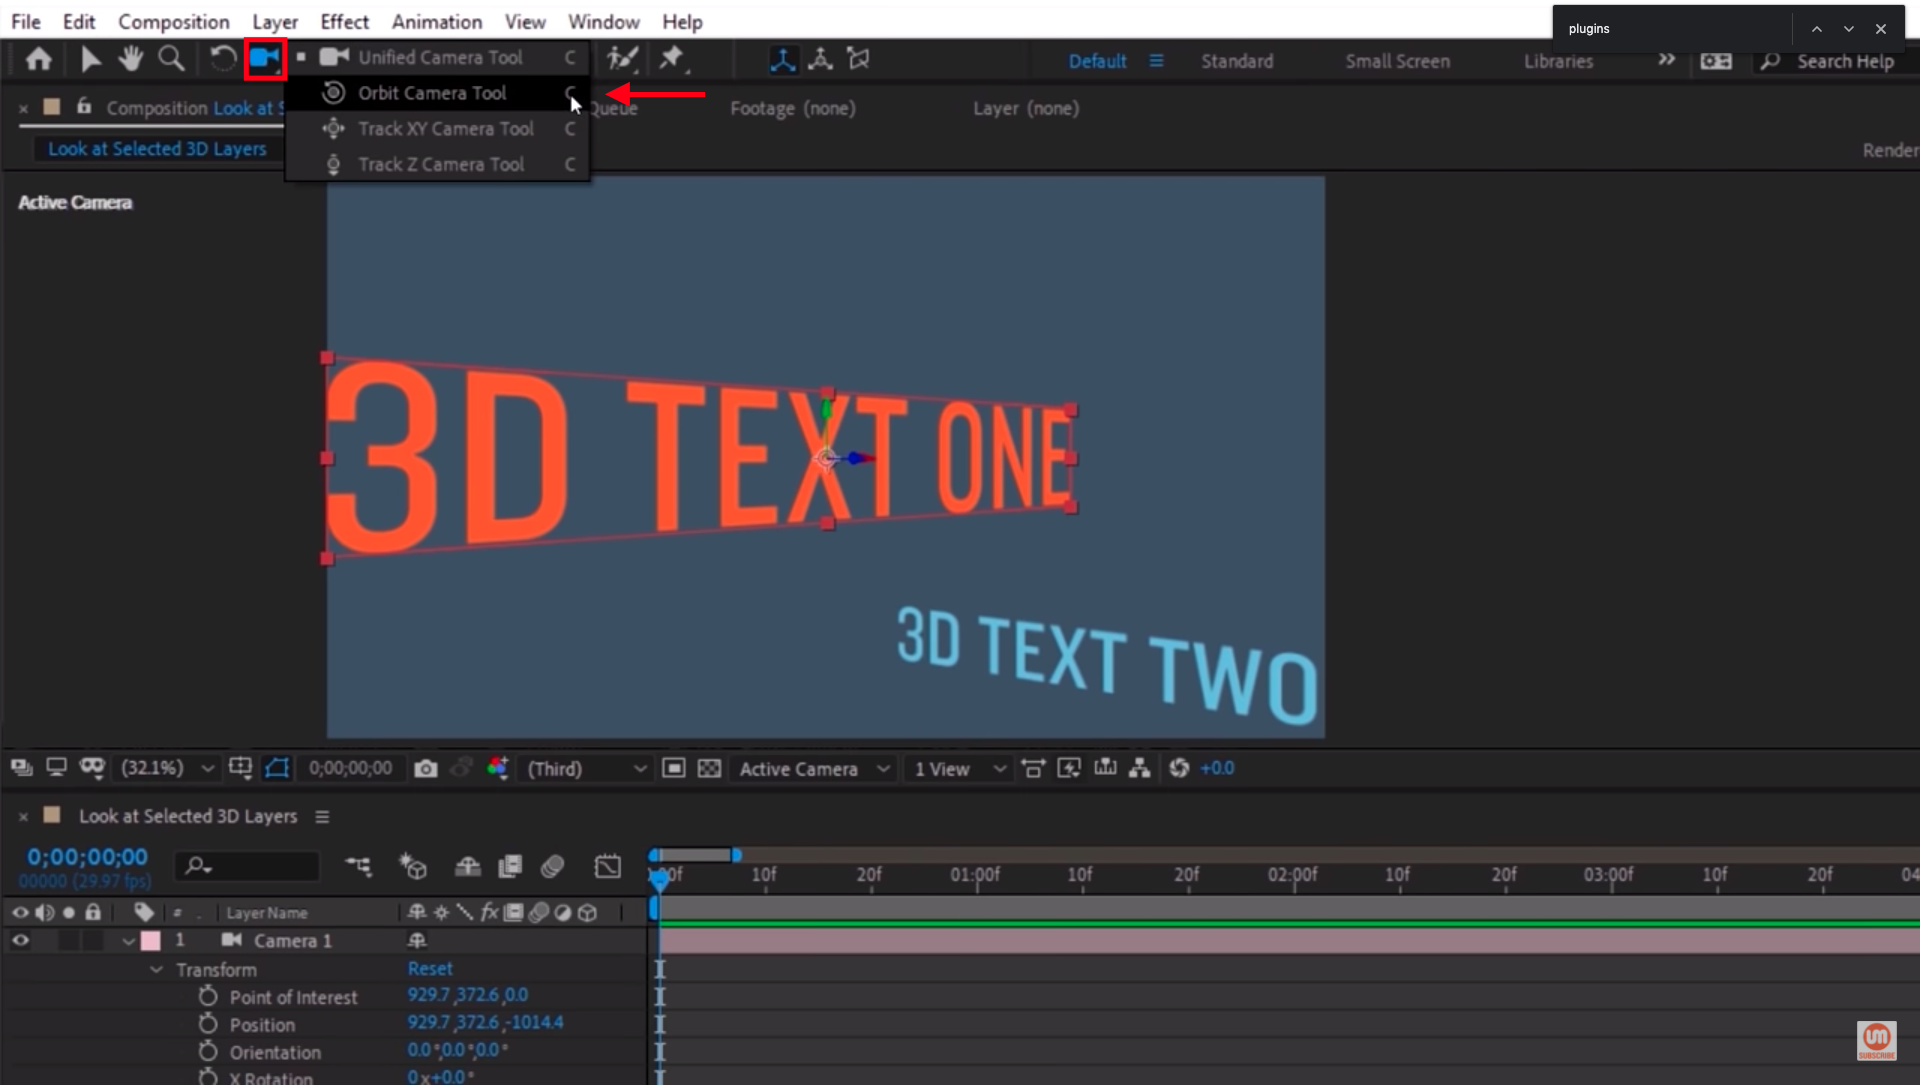 Orbit Tool After Effects